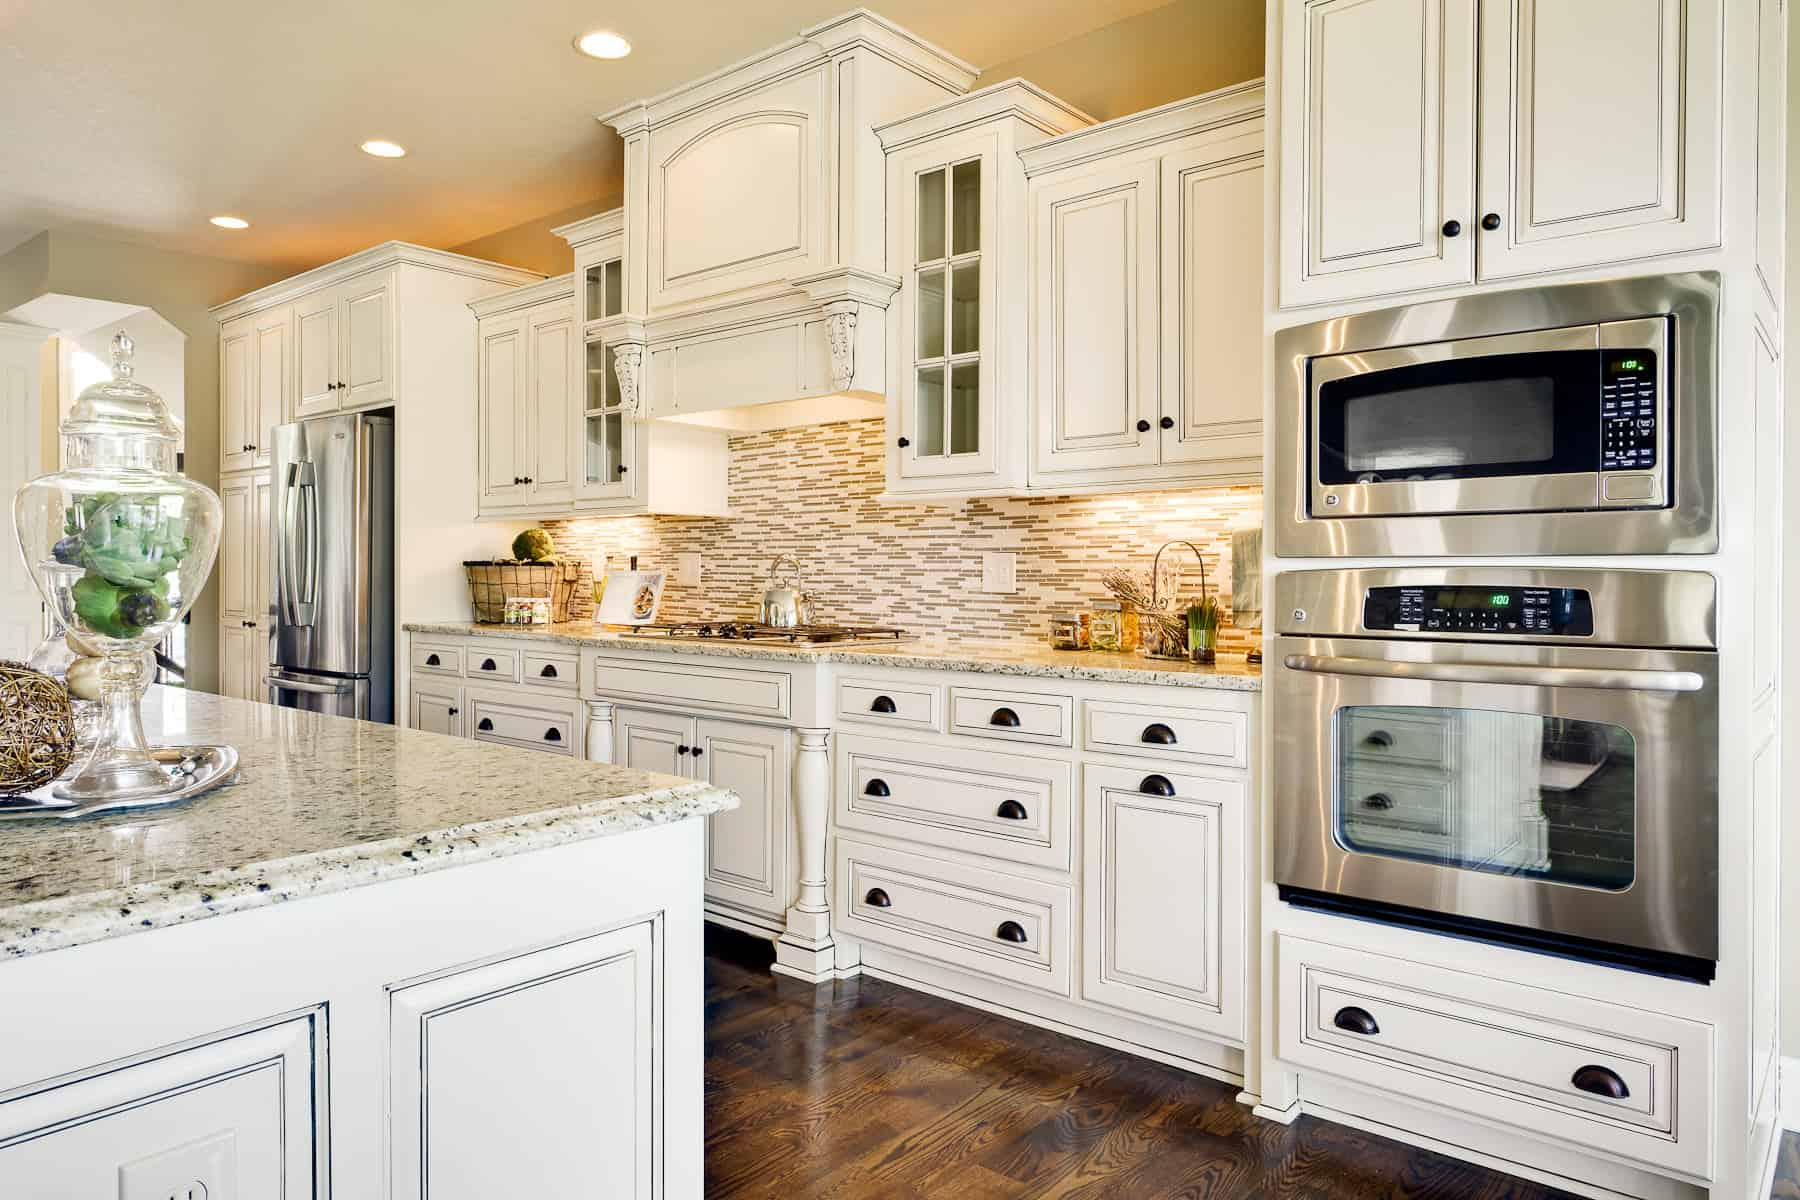 Marble Vs Granite Kitchen Countertops Granite Vs Marble Countertops Countertop Guides